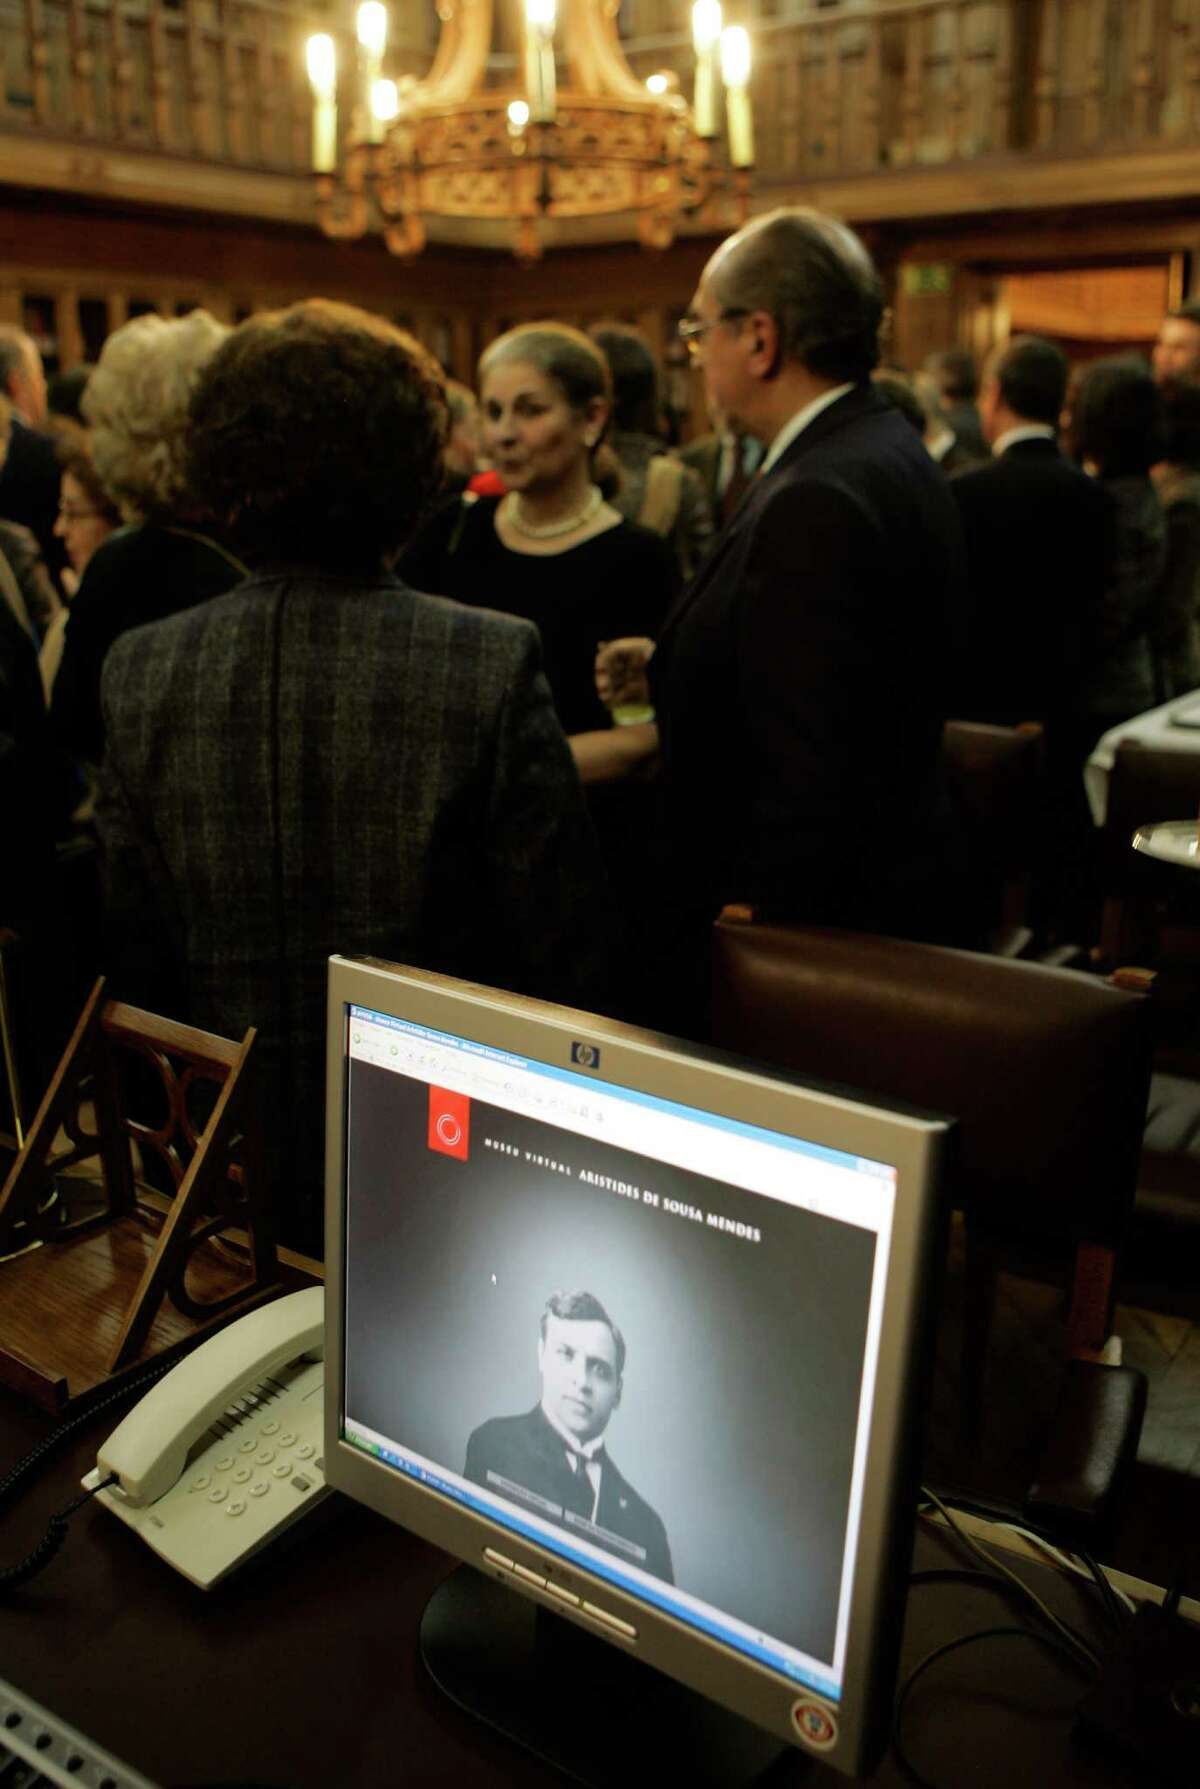 A photograph of Portuguese diplomat Aristides de Sousa Mendes is seen on a computer screen during the inauguration of a internet based virtual museum Tuesday, Feb. 19 2008, at the Portuguese parliament in Lisbon. Sousa Mendes saved thousands of Jews from the Nazis during World War II by issuing them visas to Portugal against his government orders.(AP Photo/Armando Franca)